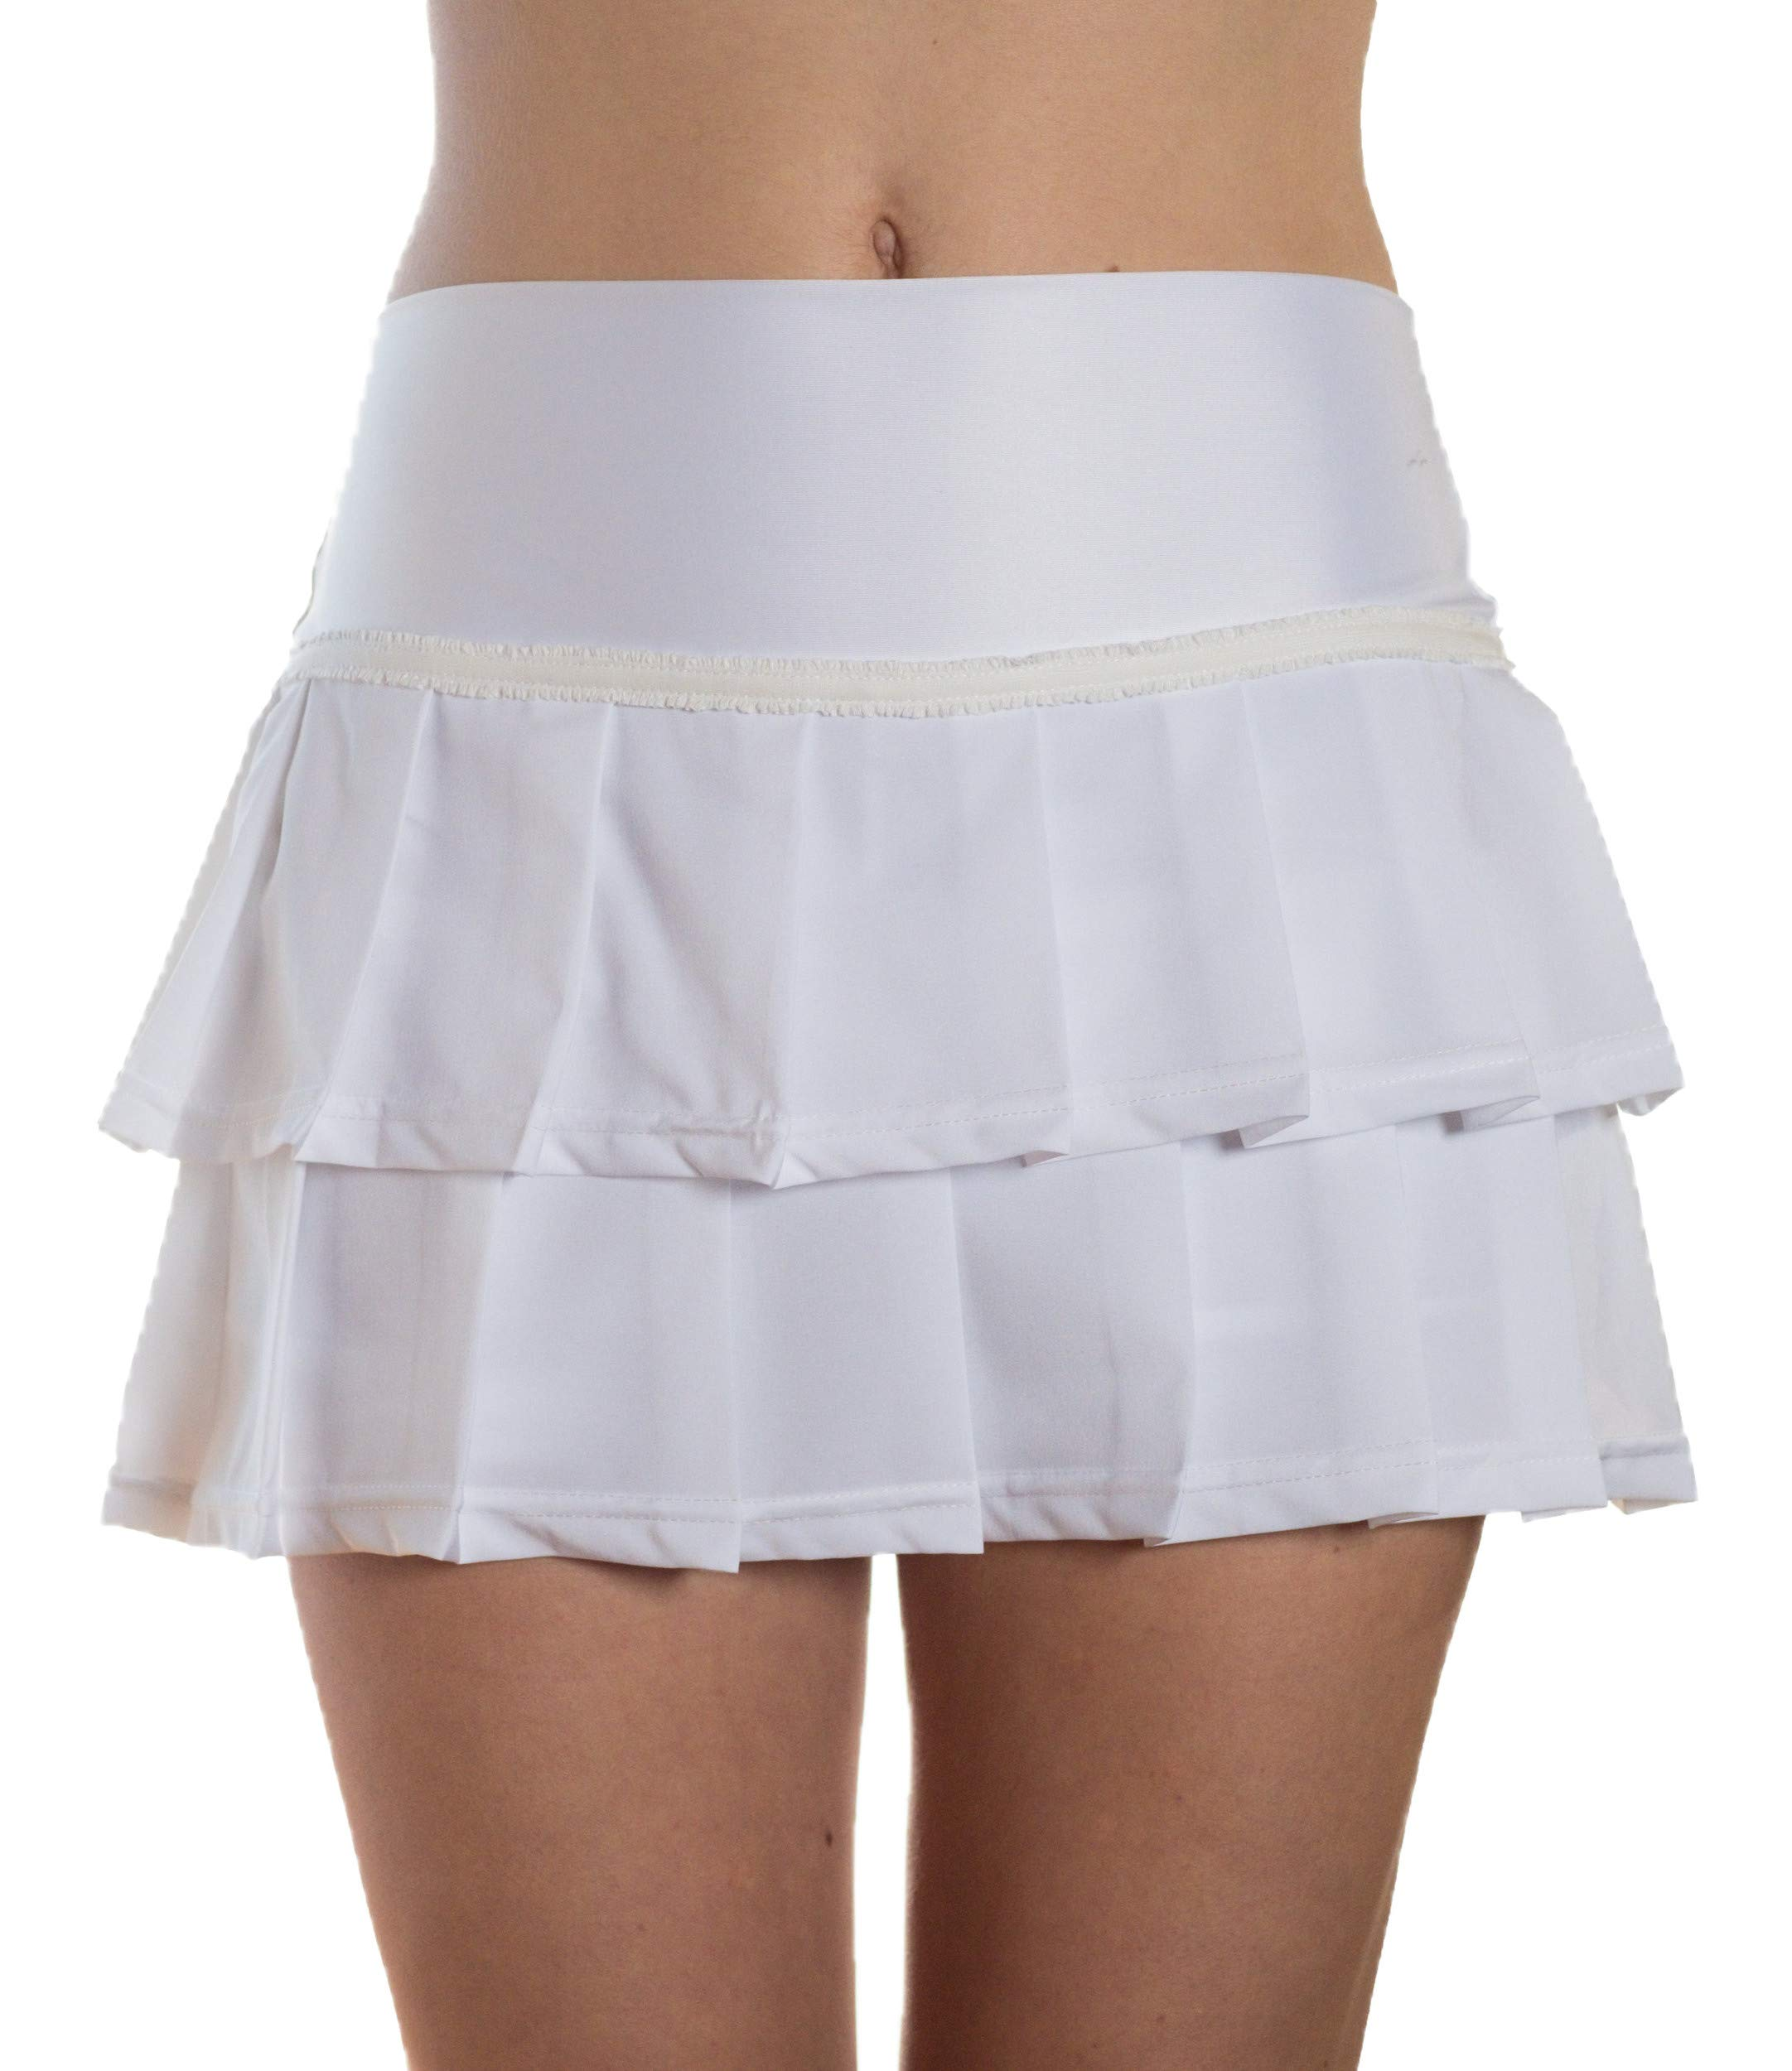 Faye+Florie Lisa 2 Tier Tennis Skirt (White, X-Small)